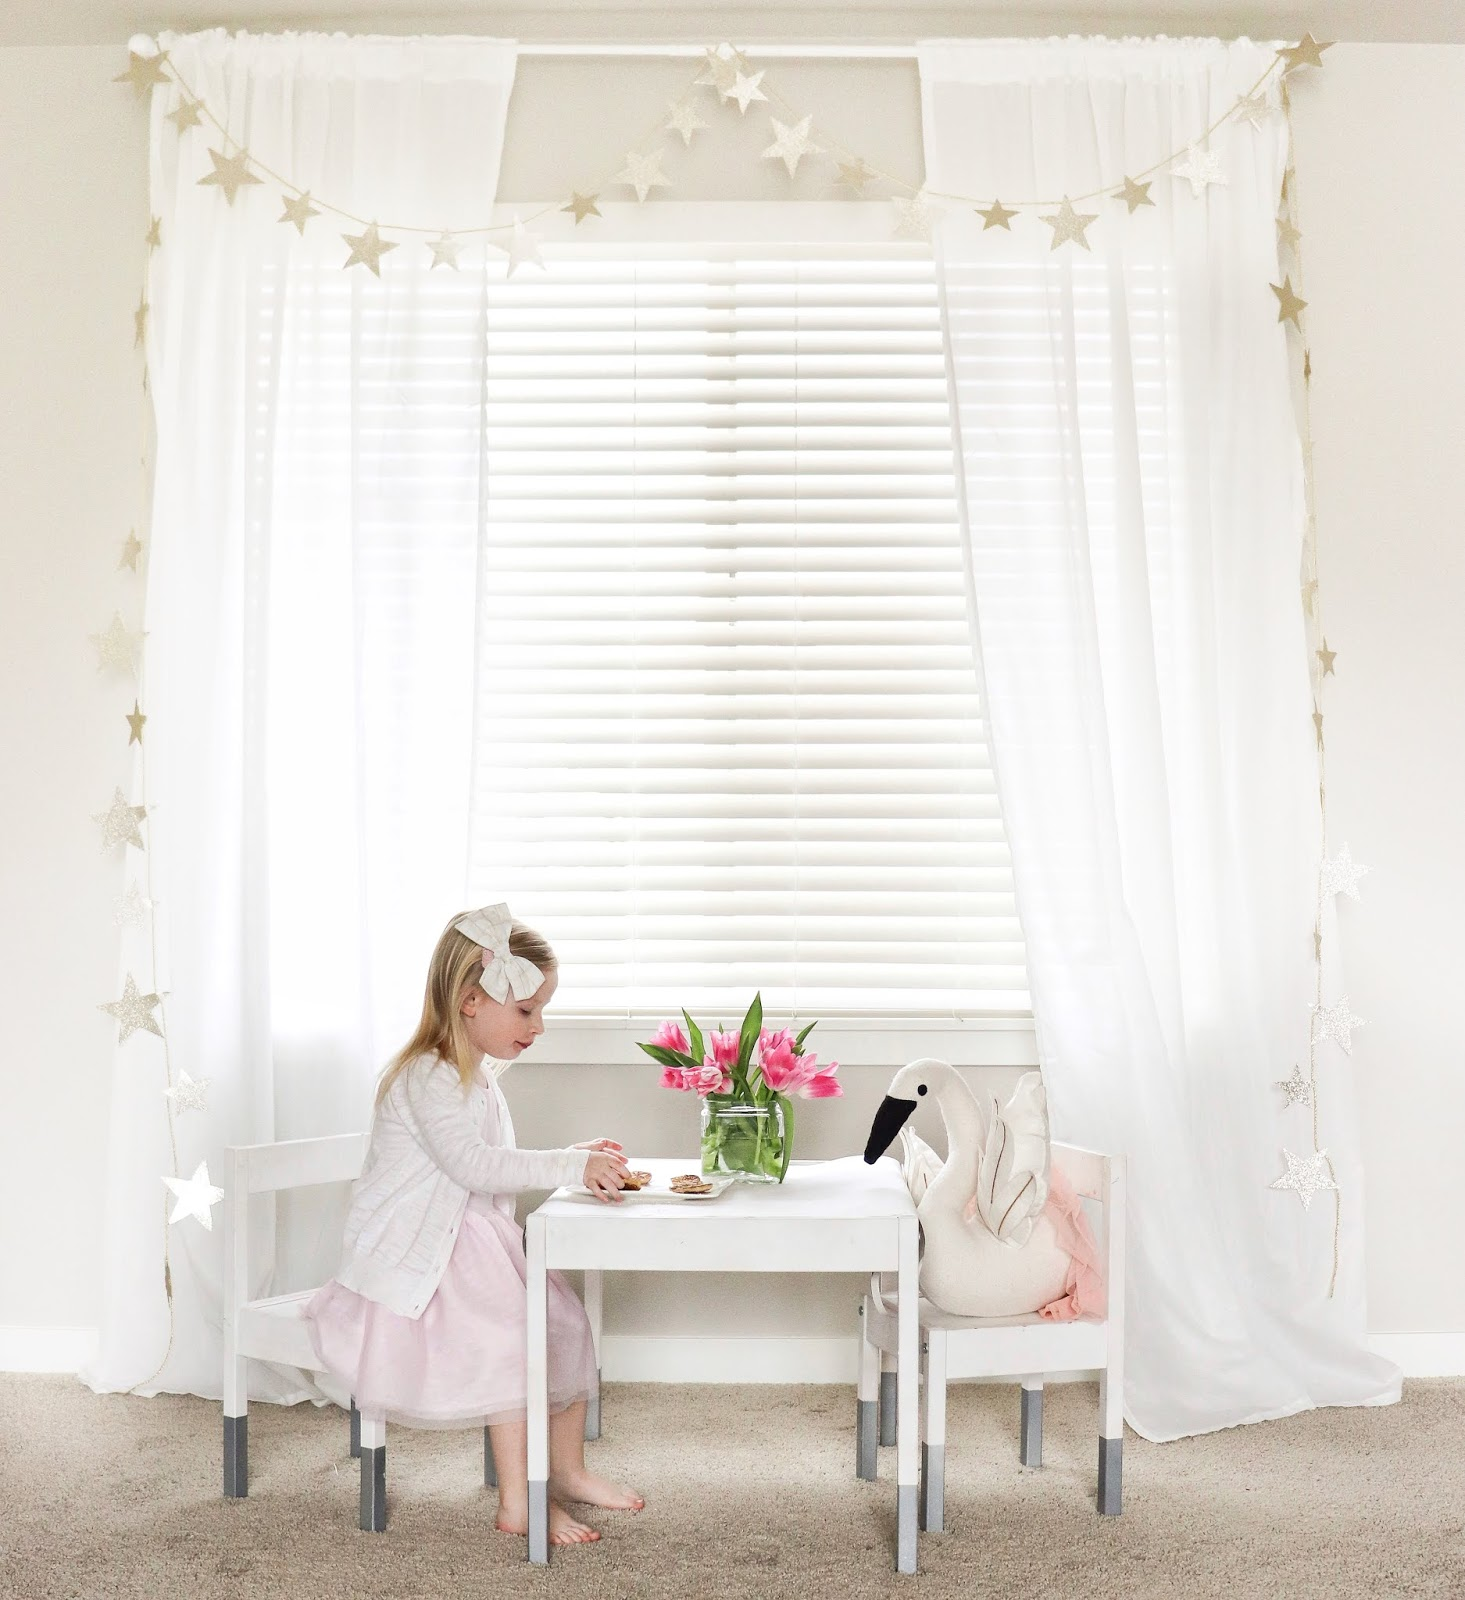 DIY Gold Star Garland